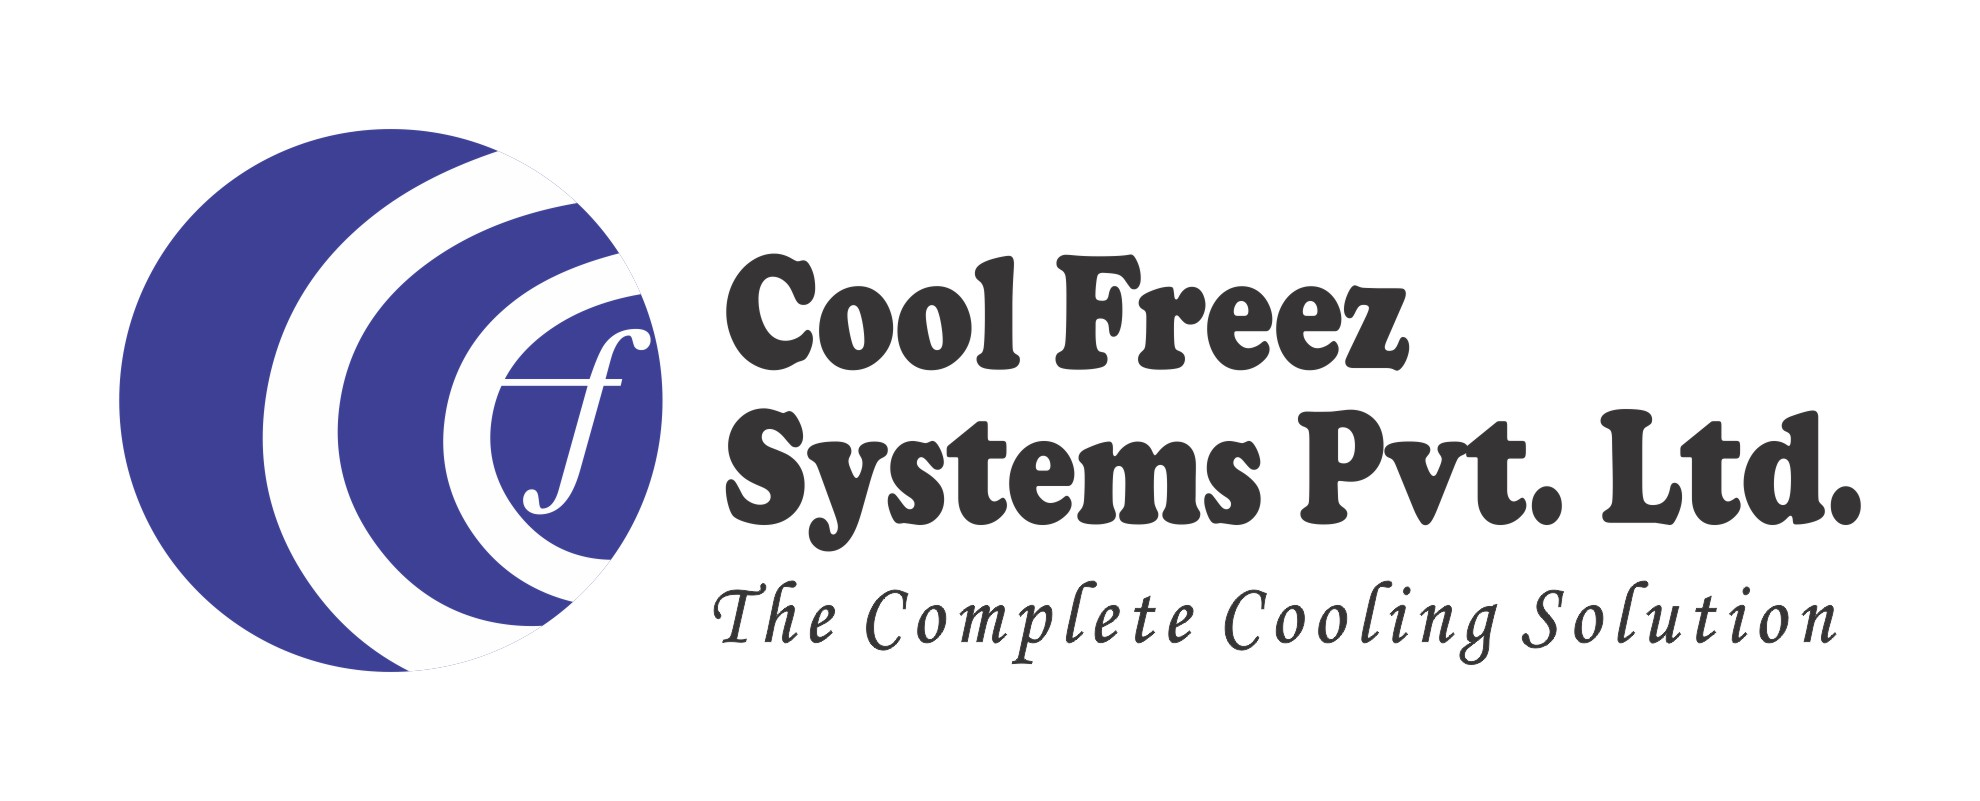 Cool Freez Systems Pvt Ltd - The Complete Cooling Solutions